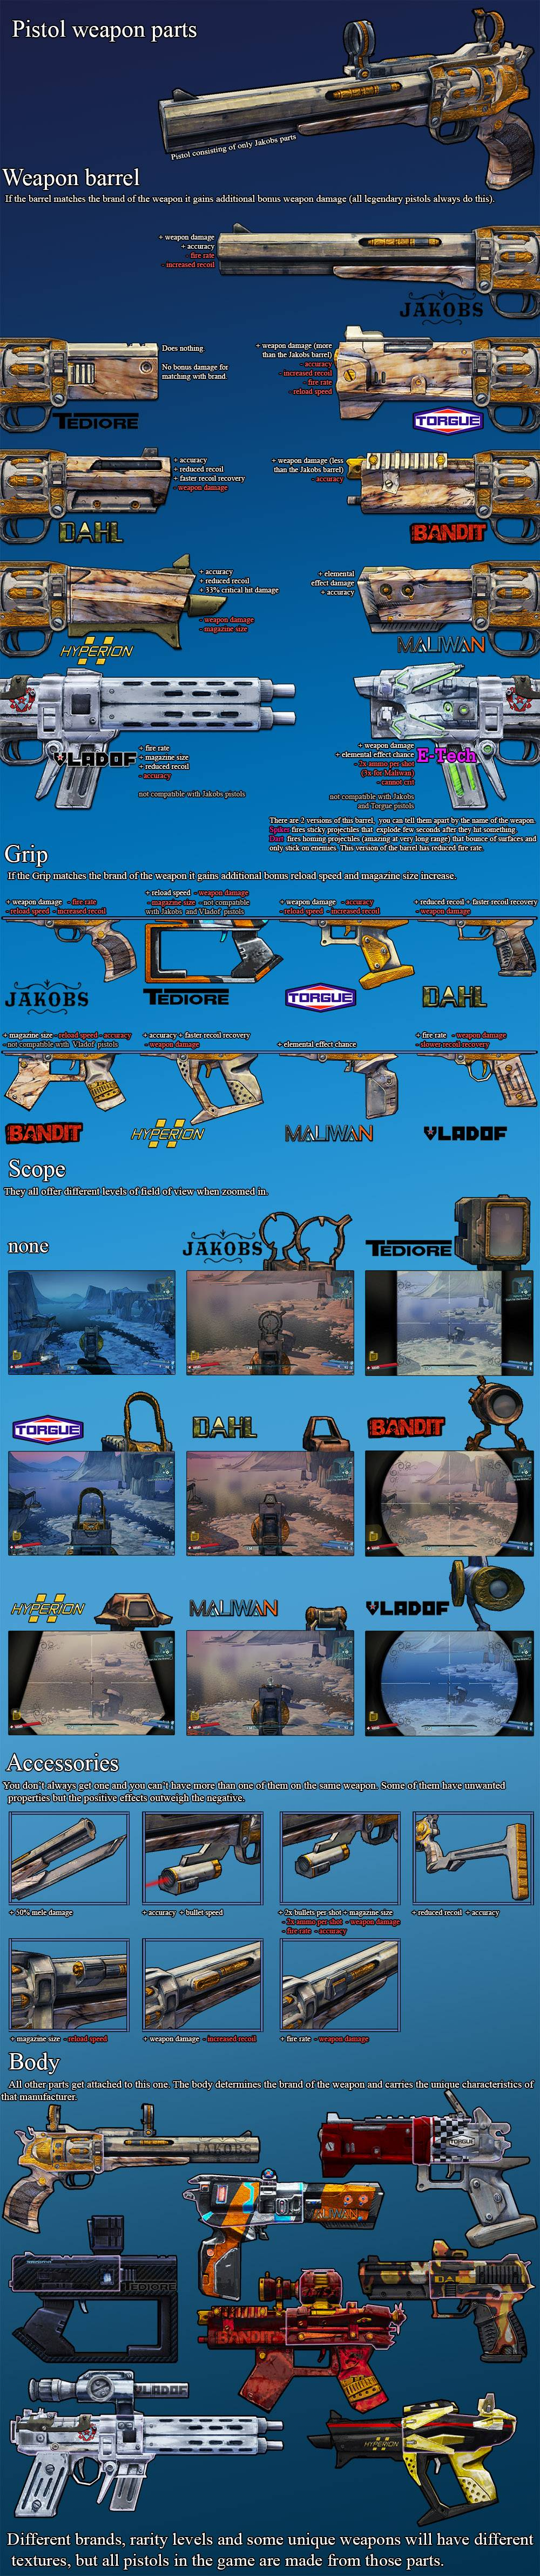 Steam Community Guide Borderlands 2 Weapon Part Charts Glock Parts Diagram If You Have Trouble Reading At The Current Size Due To Image Quality And It Had Be Scaled Down A Bit Fit Into Steams 2mb Under